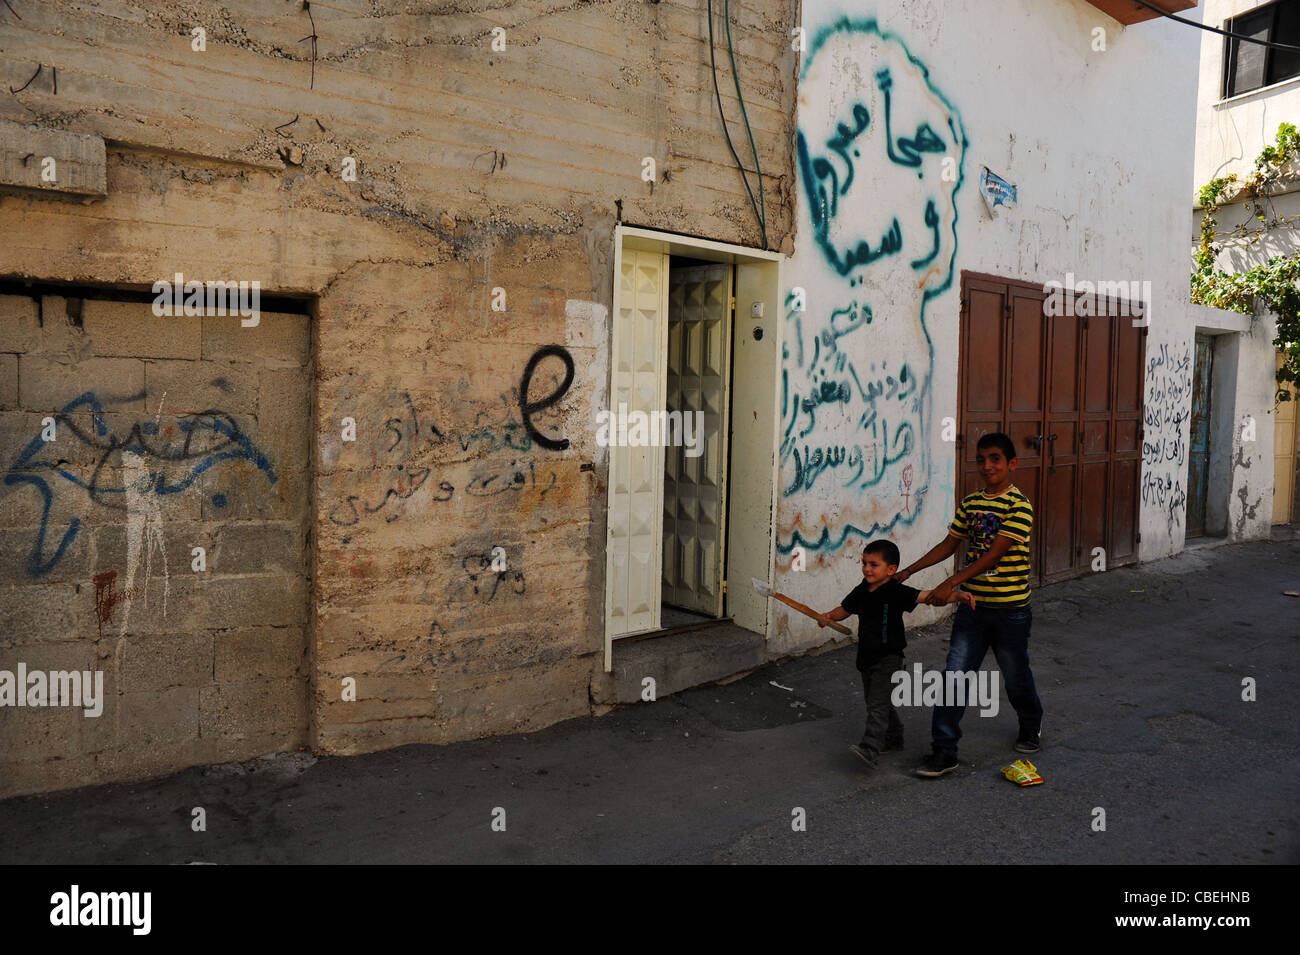 """Marking of the Israeli colonists during their violent comings in the Palestinian villages., The """"E"""" which means Stock Photo"""